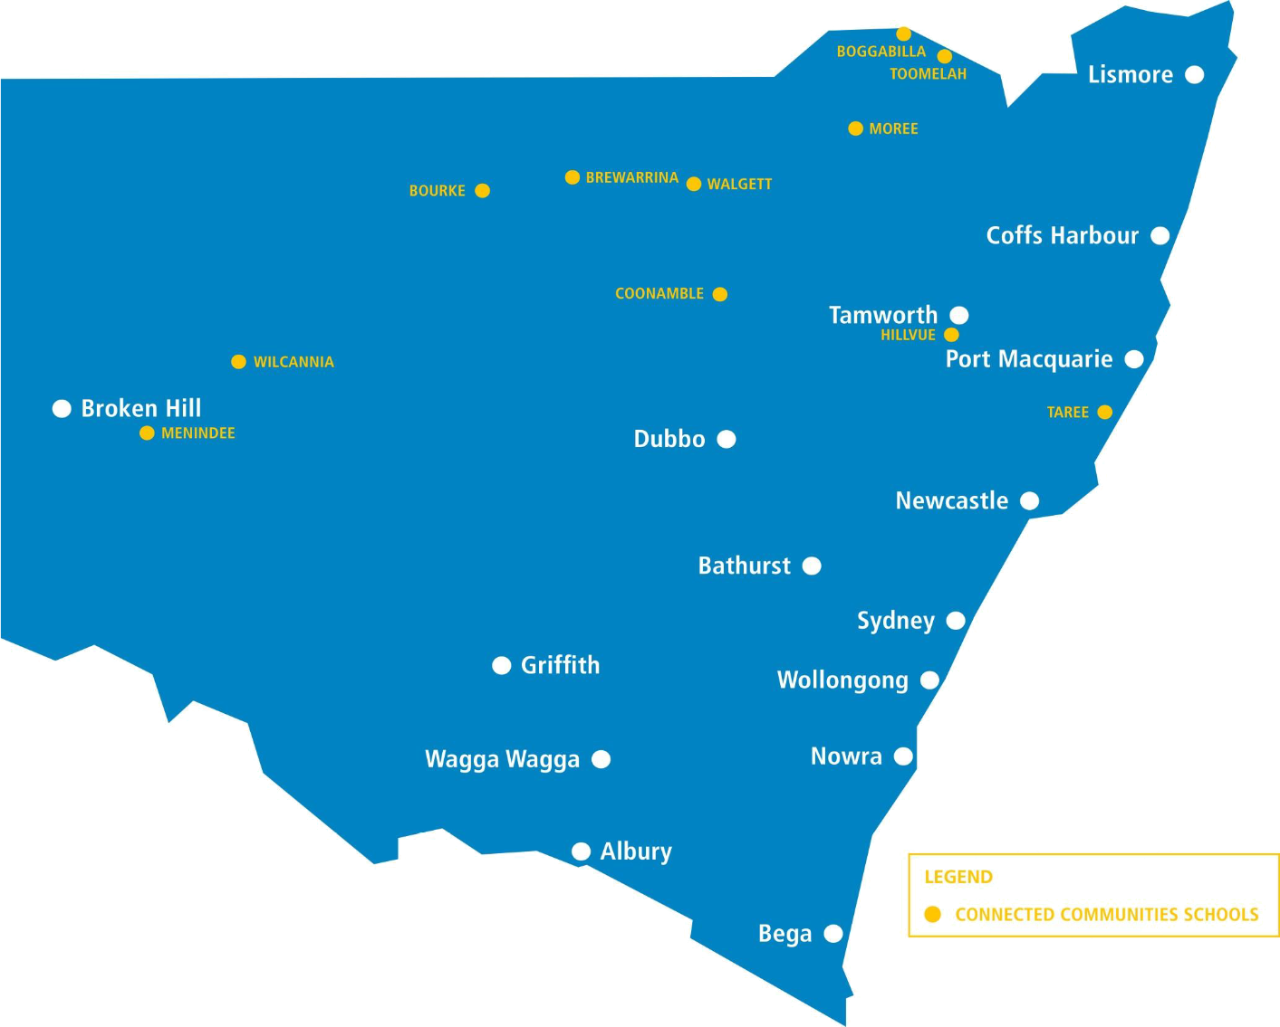 Map of NSW with Connected Communities locations marked.